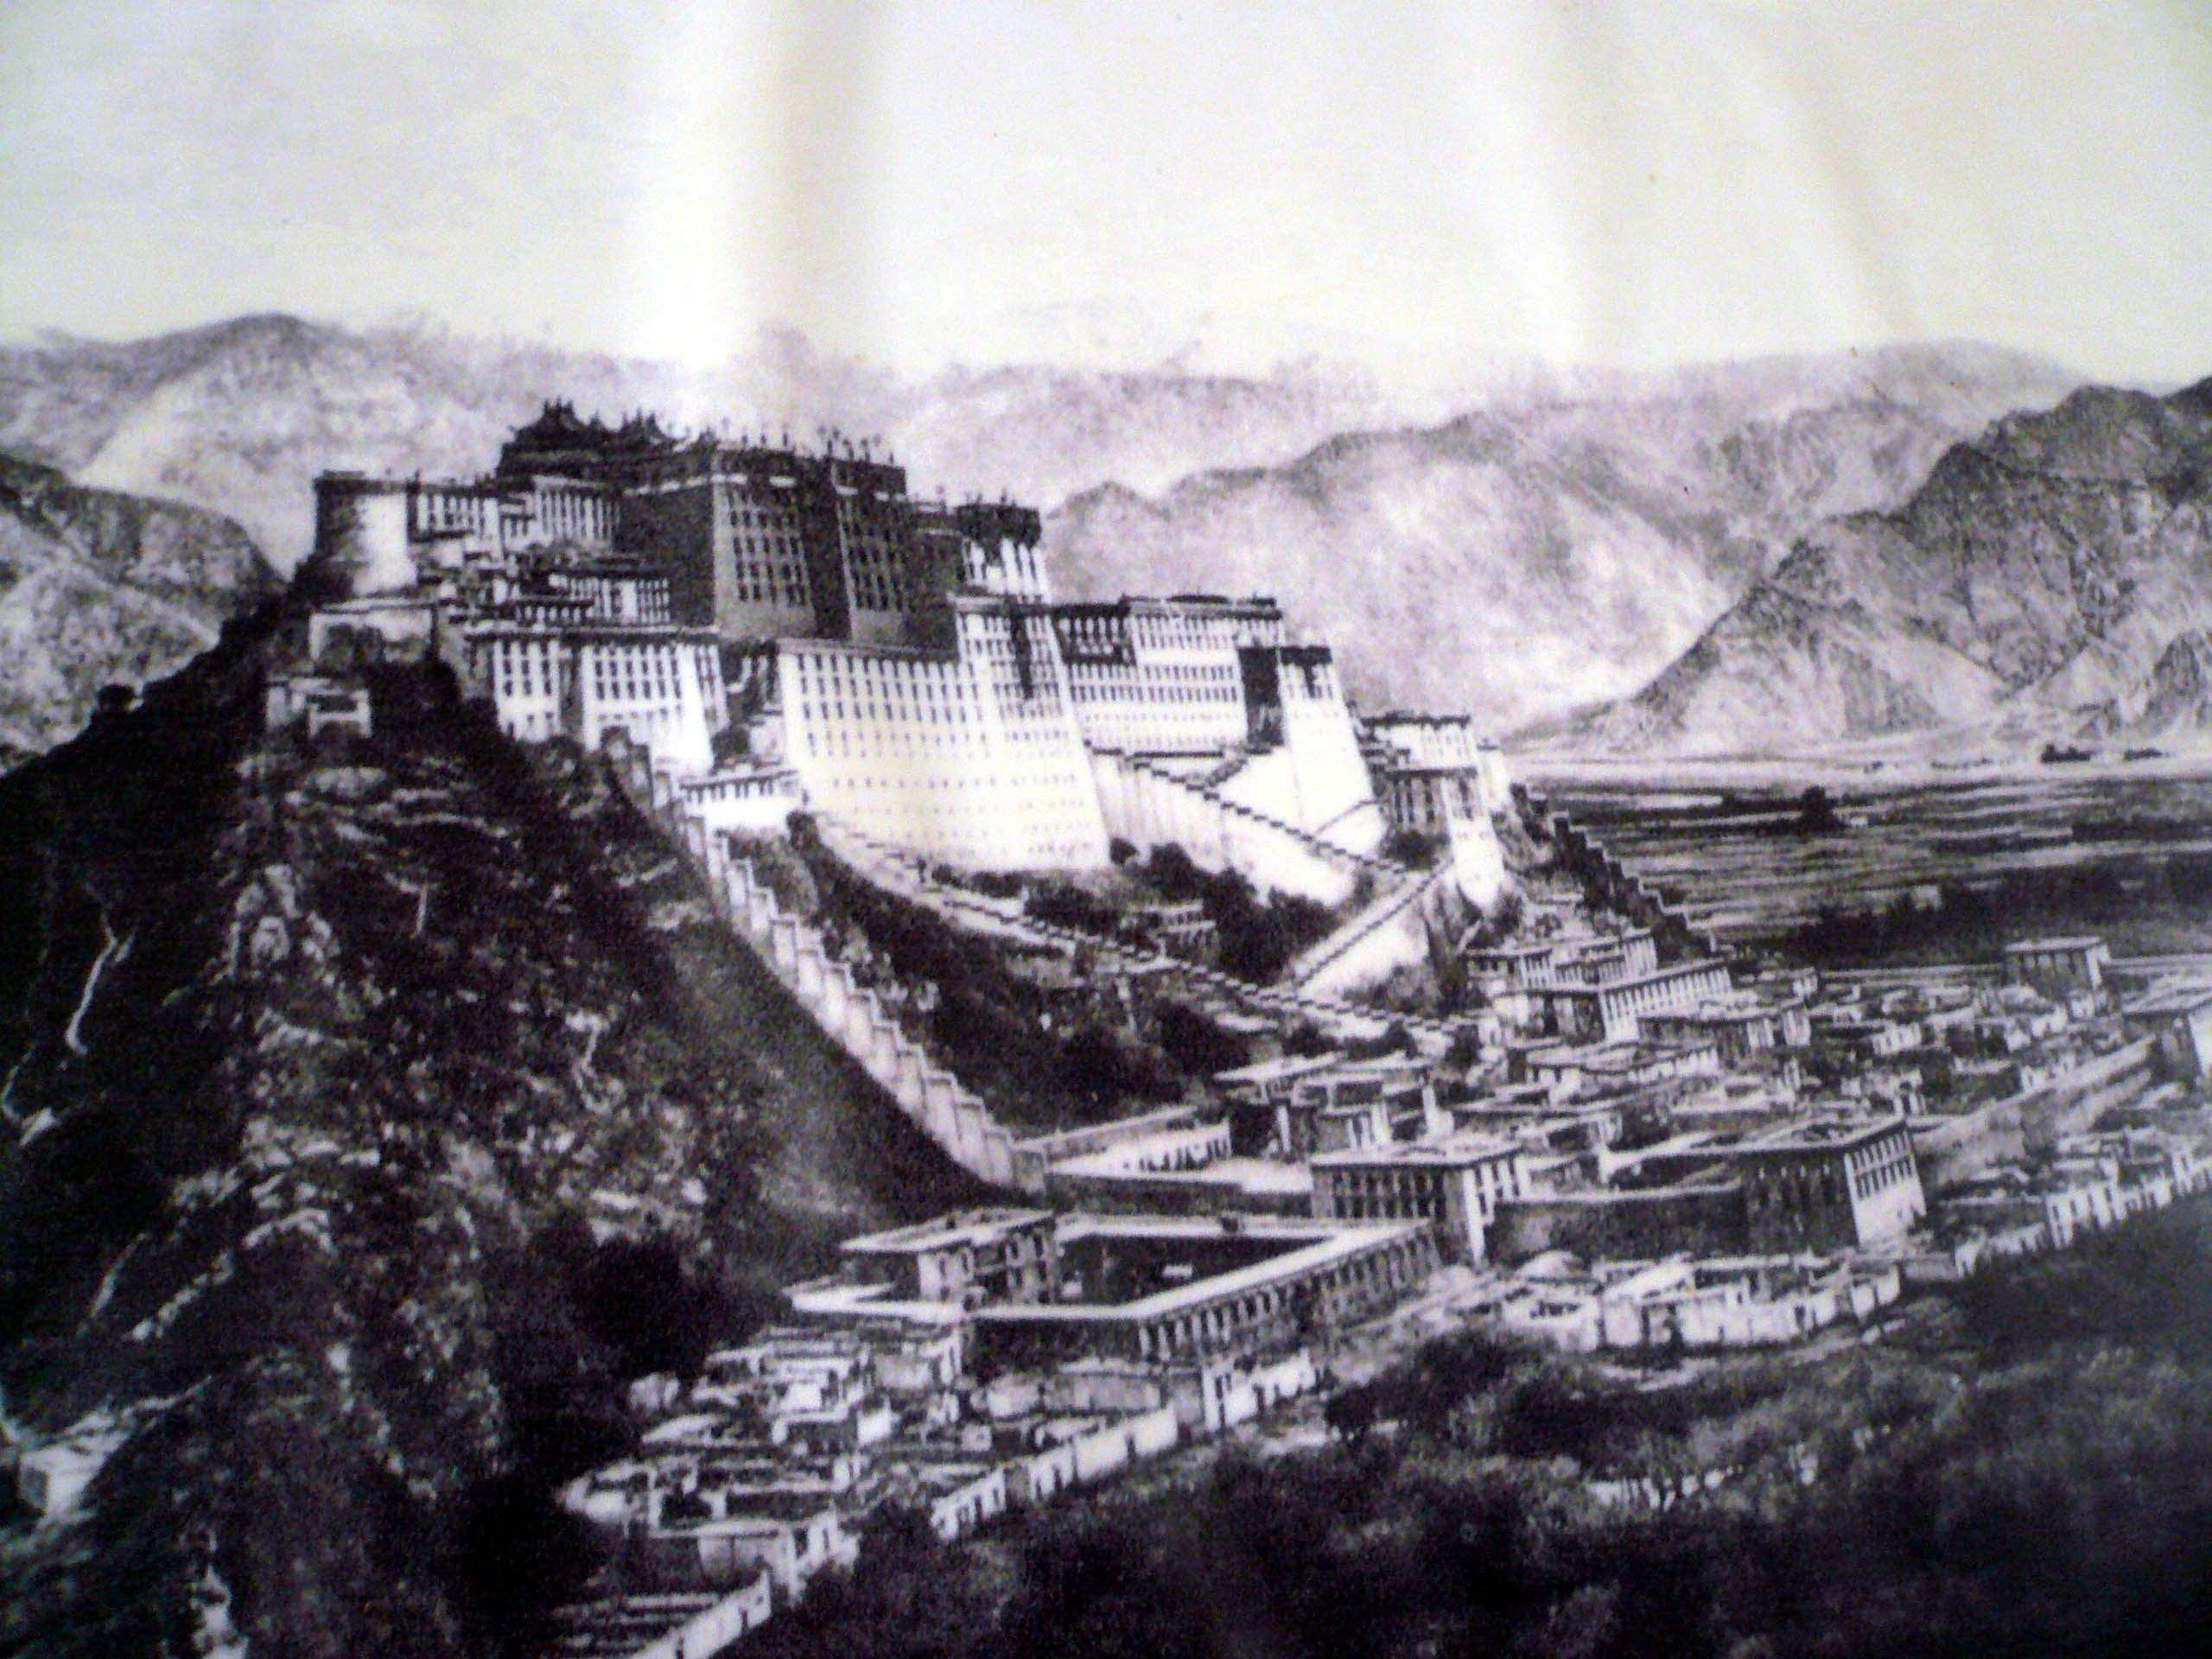 An old photo of how the original Potala Palace and its surrounding. Most of the administrative buildings below have been demolished to create roads and a musical fountain public square